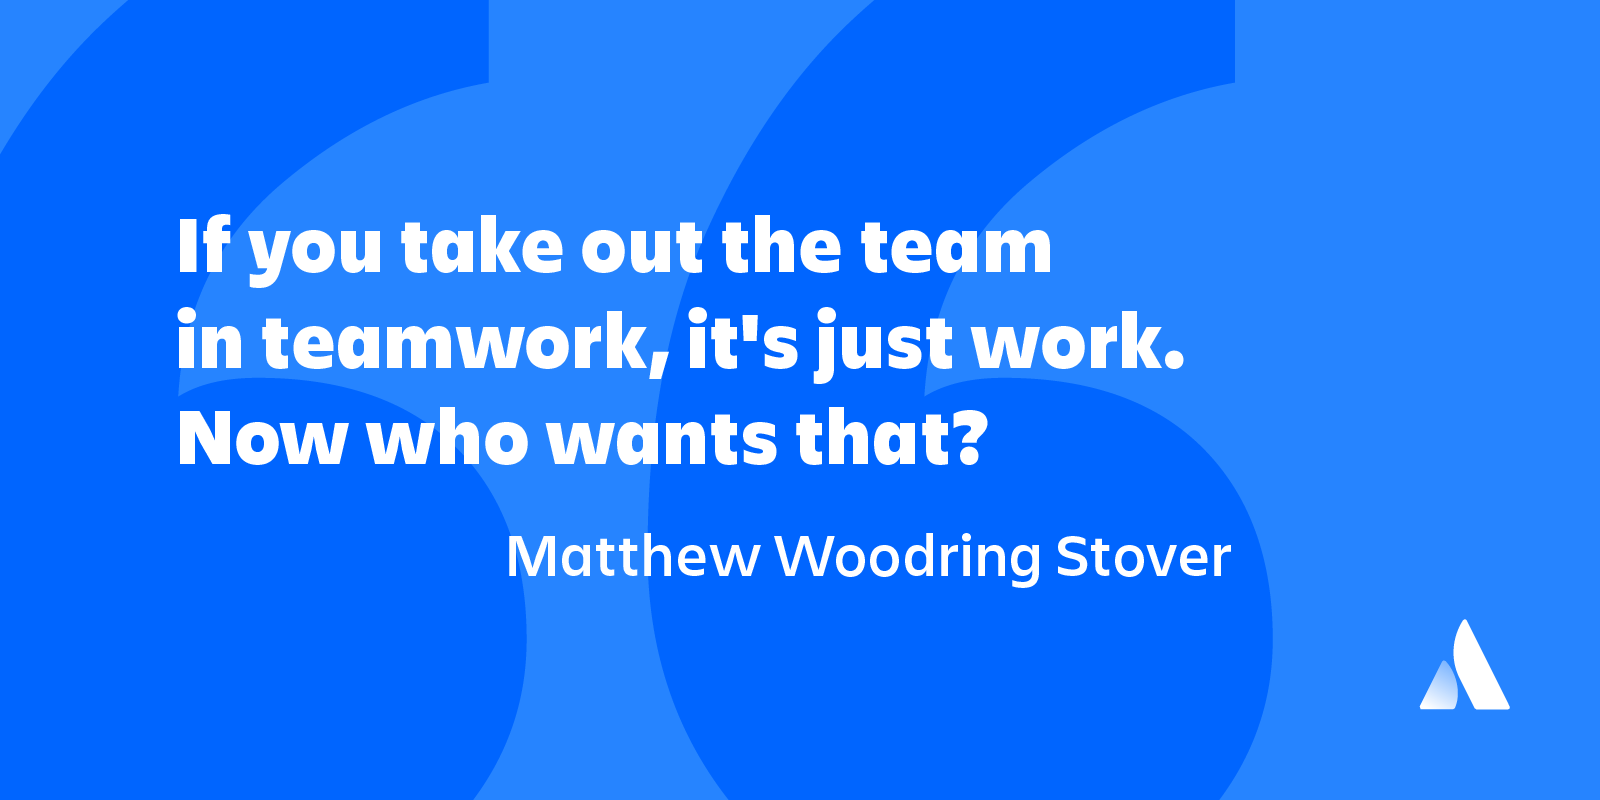 18 Non Corny Teamwork Quotes Youll Actually Like Work Life By